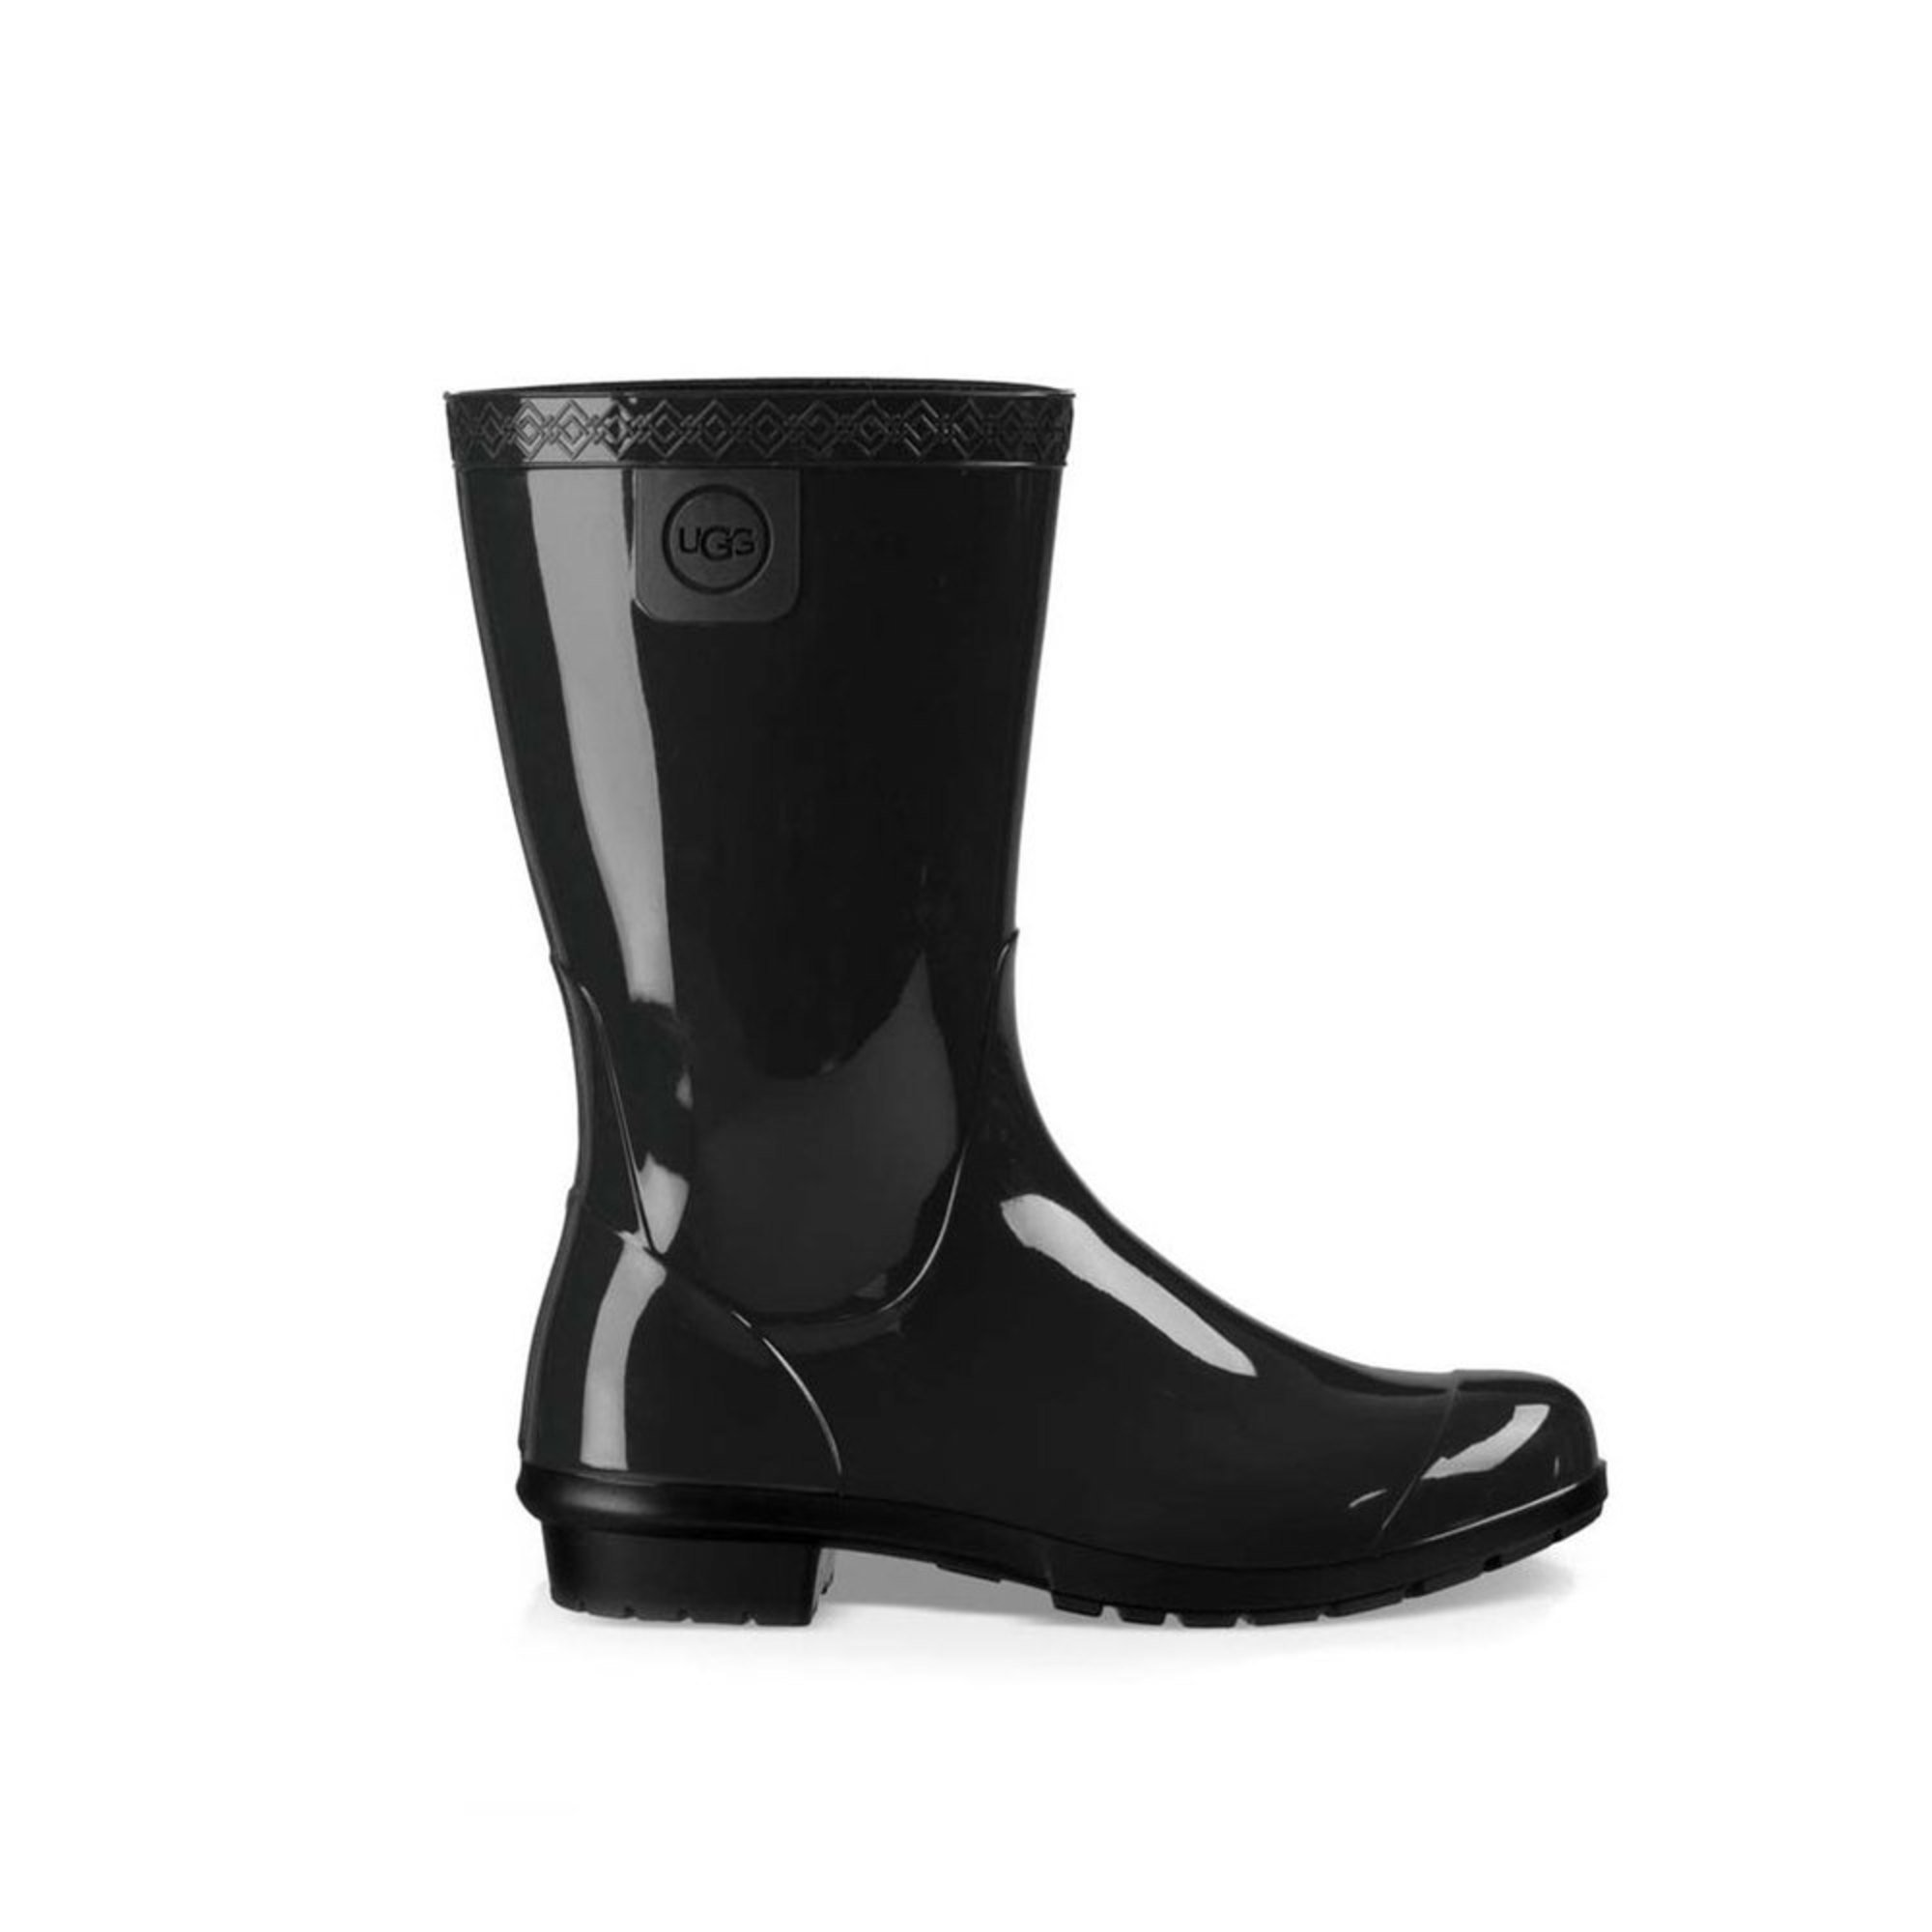 Ugg Rain Boots Clearance | NATIONAL SHERIFFS' ASSOCIATION